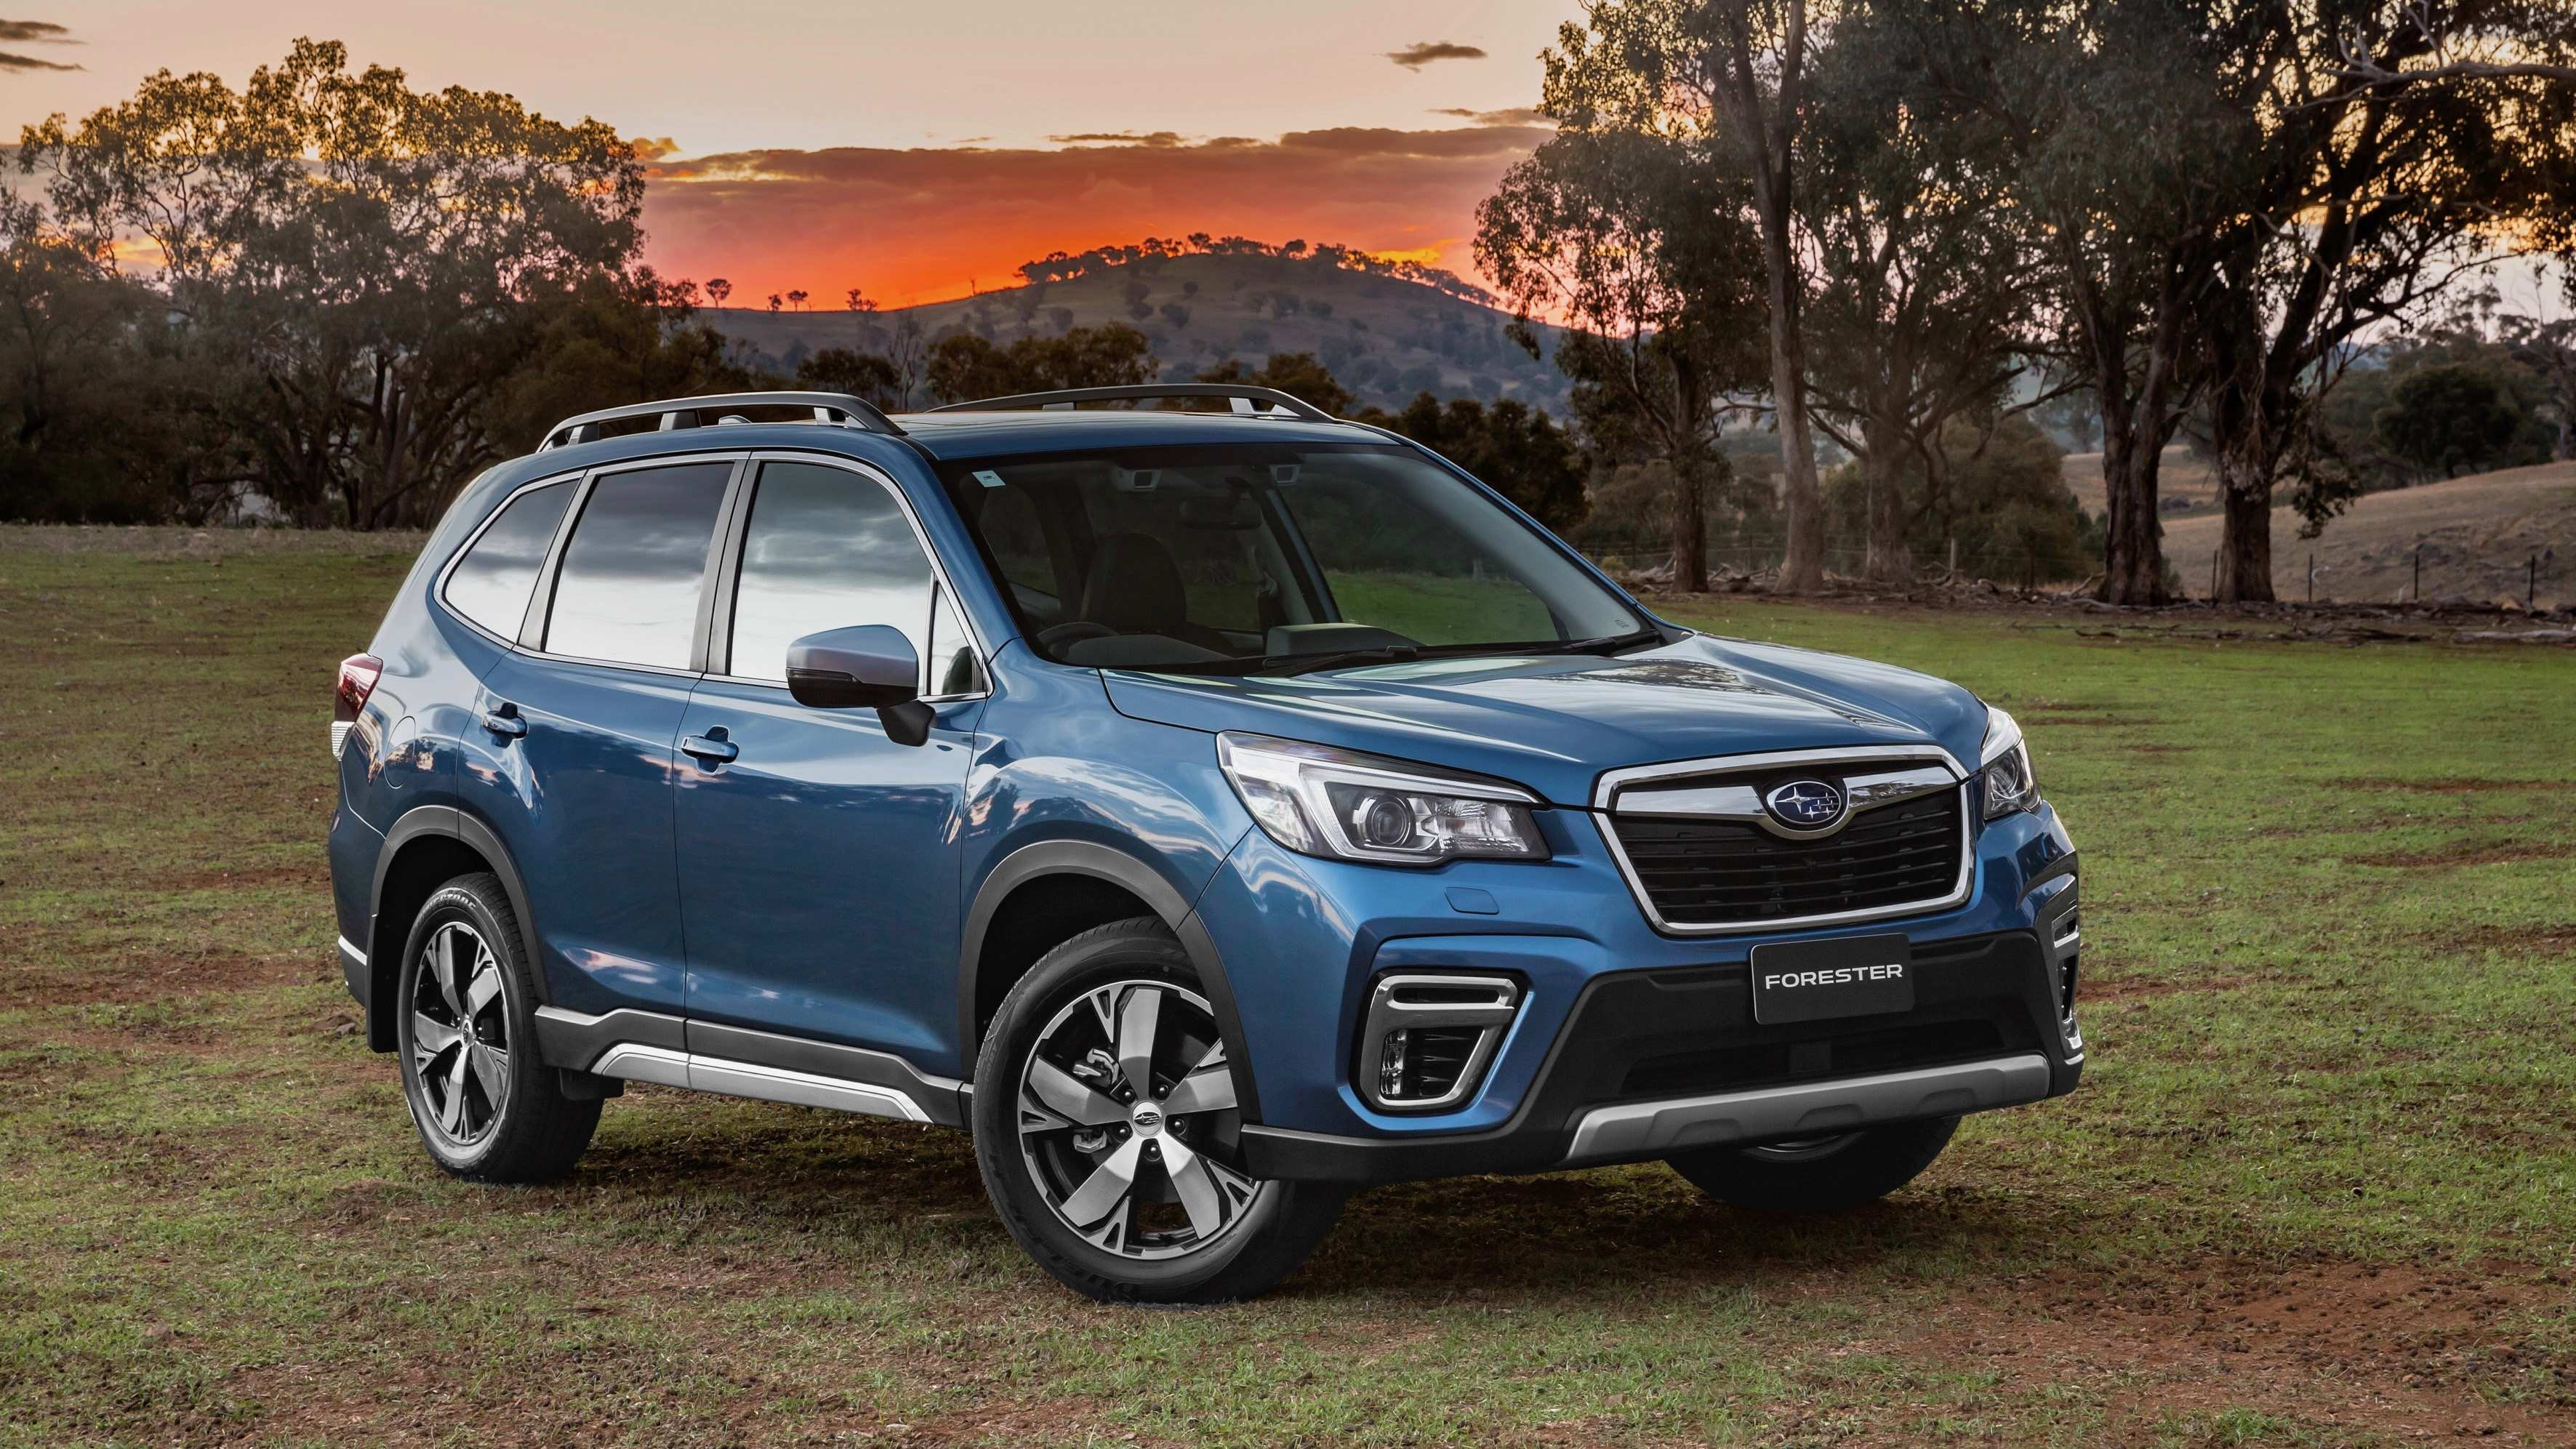 62 Great The 2019 Subaru Forester Vs Jeep Cherokee Review Ratings with The 2019 Subaru Forester Vs Jeep Cherokee Review